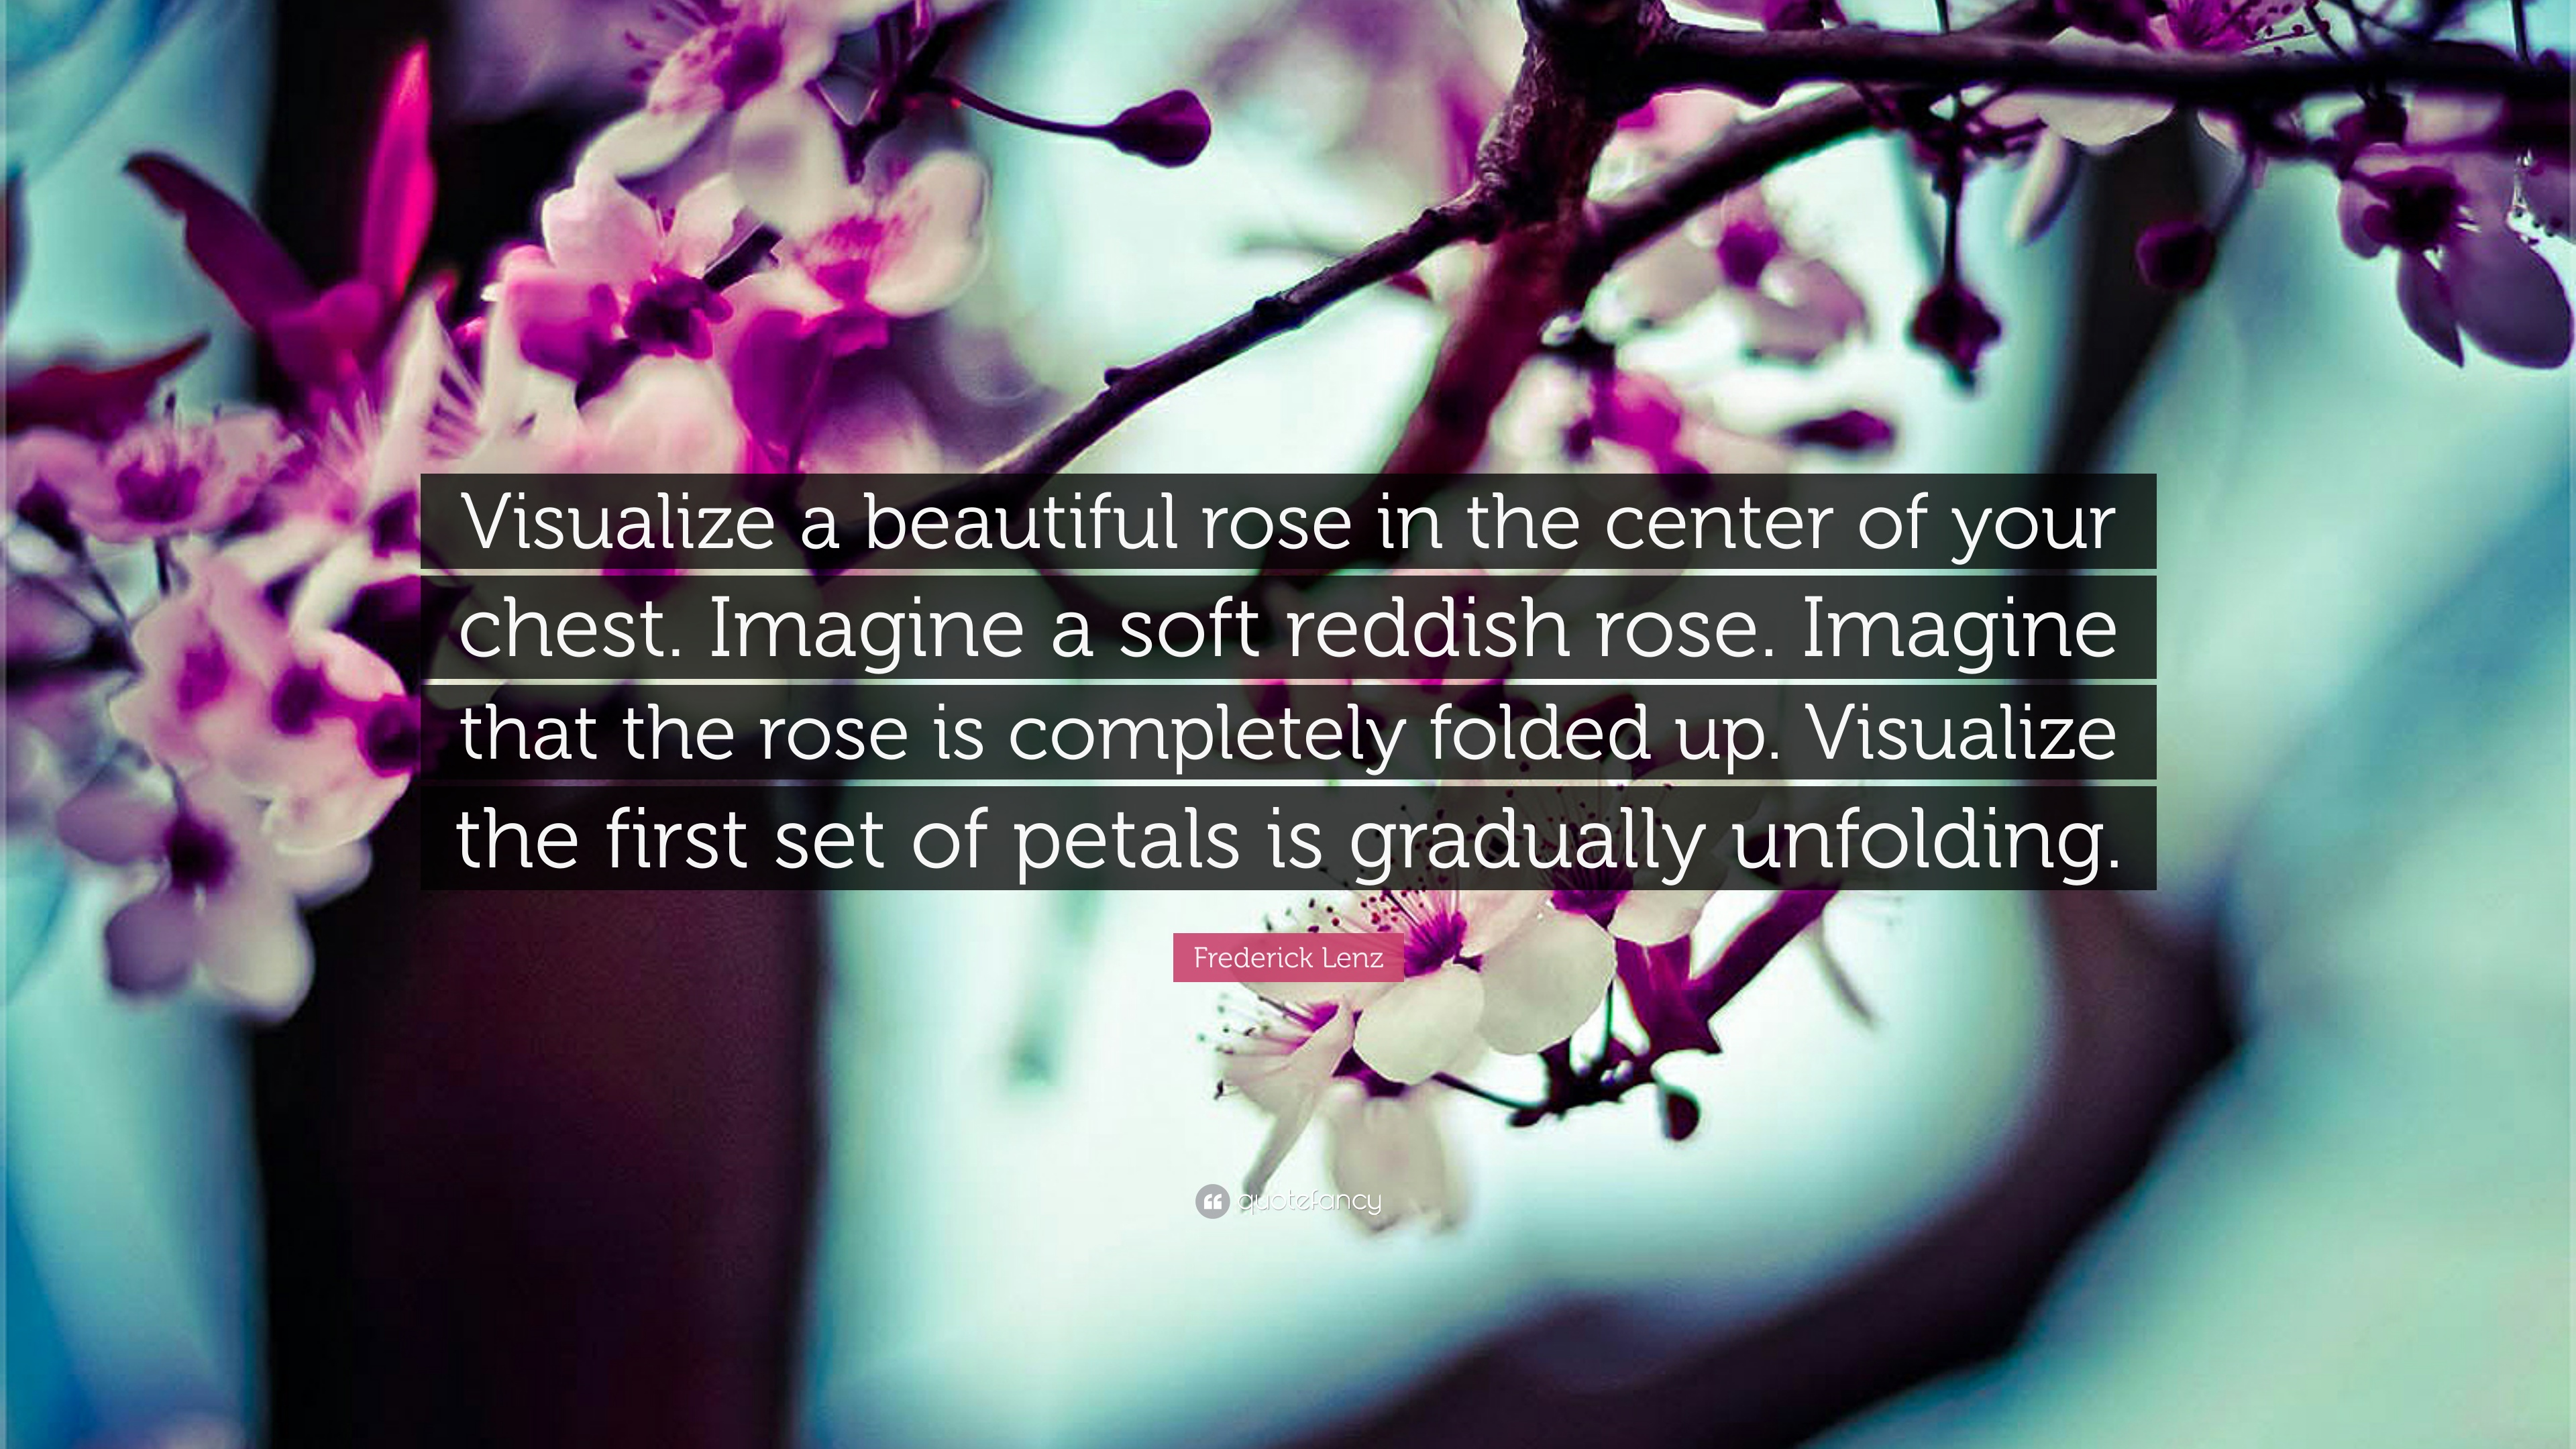 Frederick lenz quote visualize a beautiful rose in the center of frederick lenz quote visualize a beautiful rose in the center of your chest izmirmasajfo